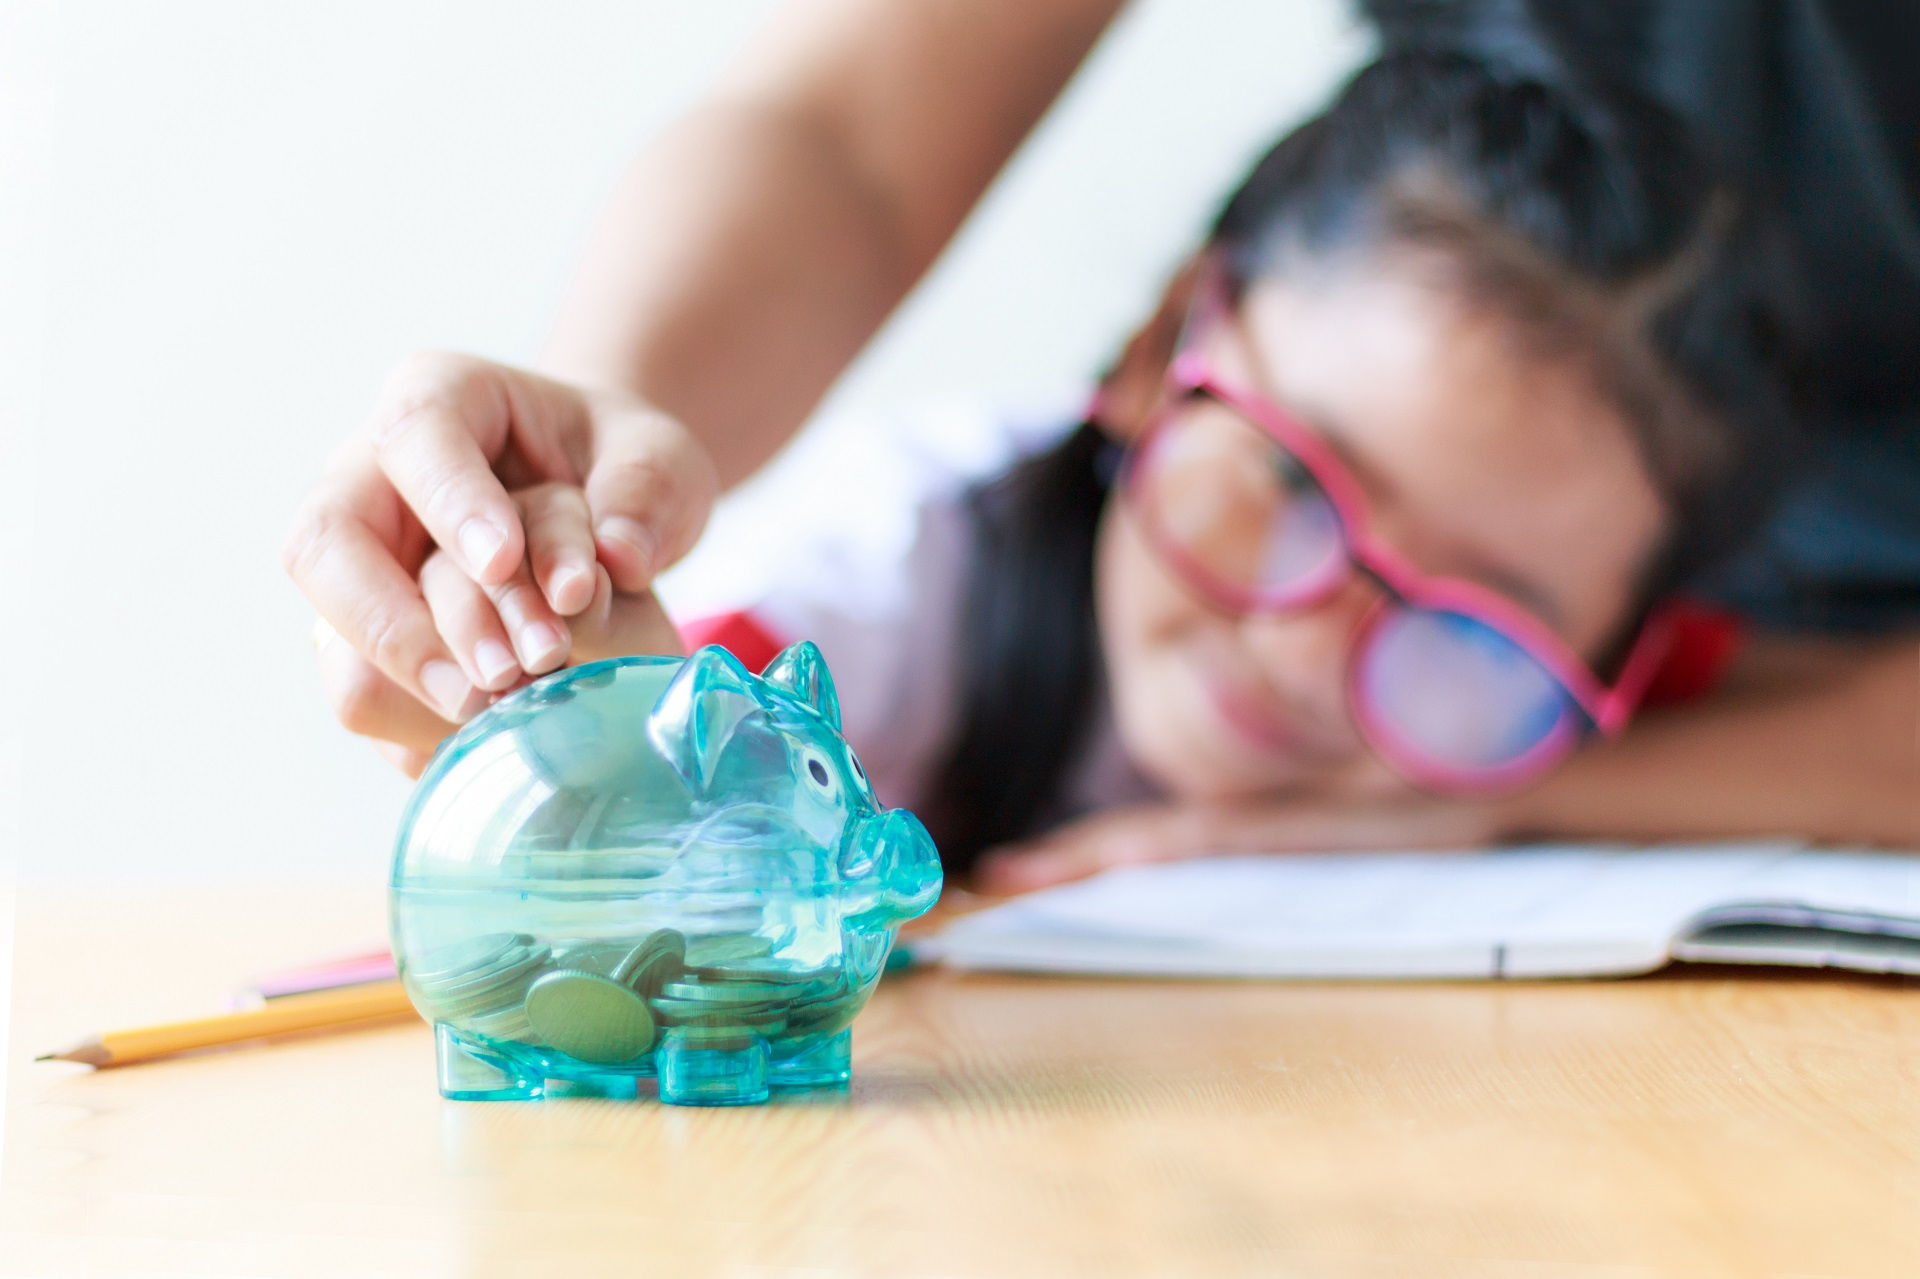 When Should You Set Up a Child's Savings Account?